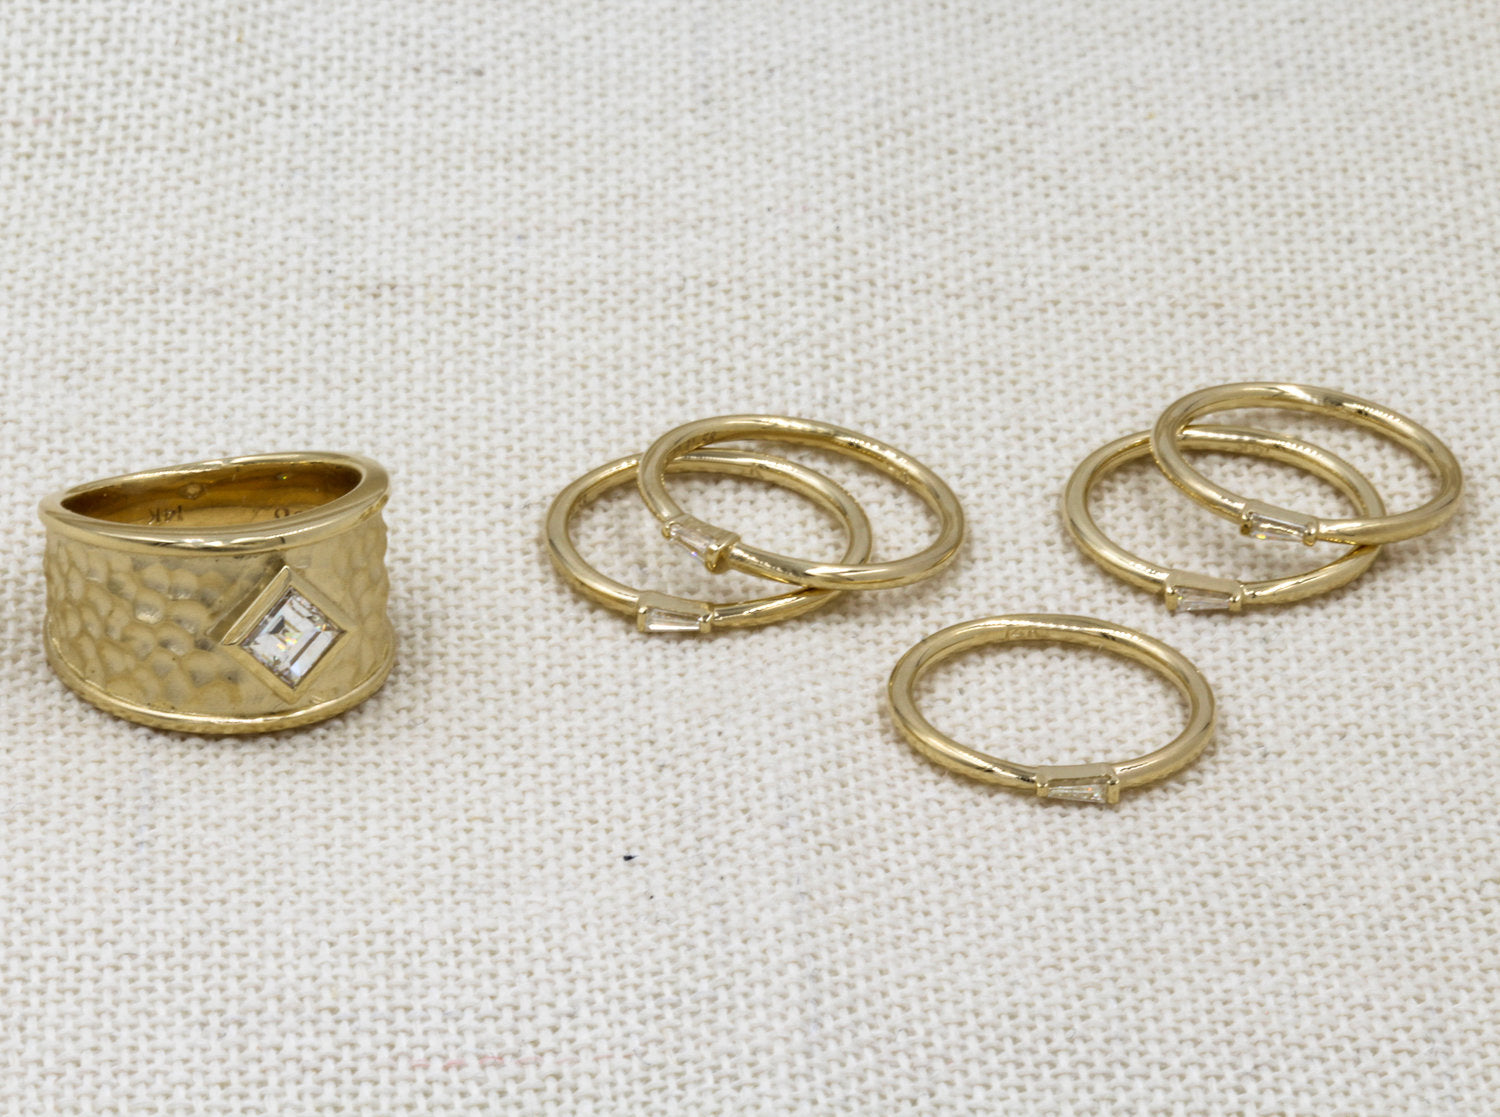 From Parents' Wedding Set to Six New Rings